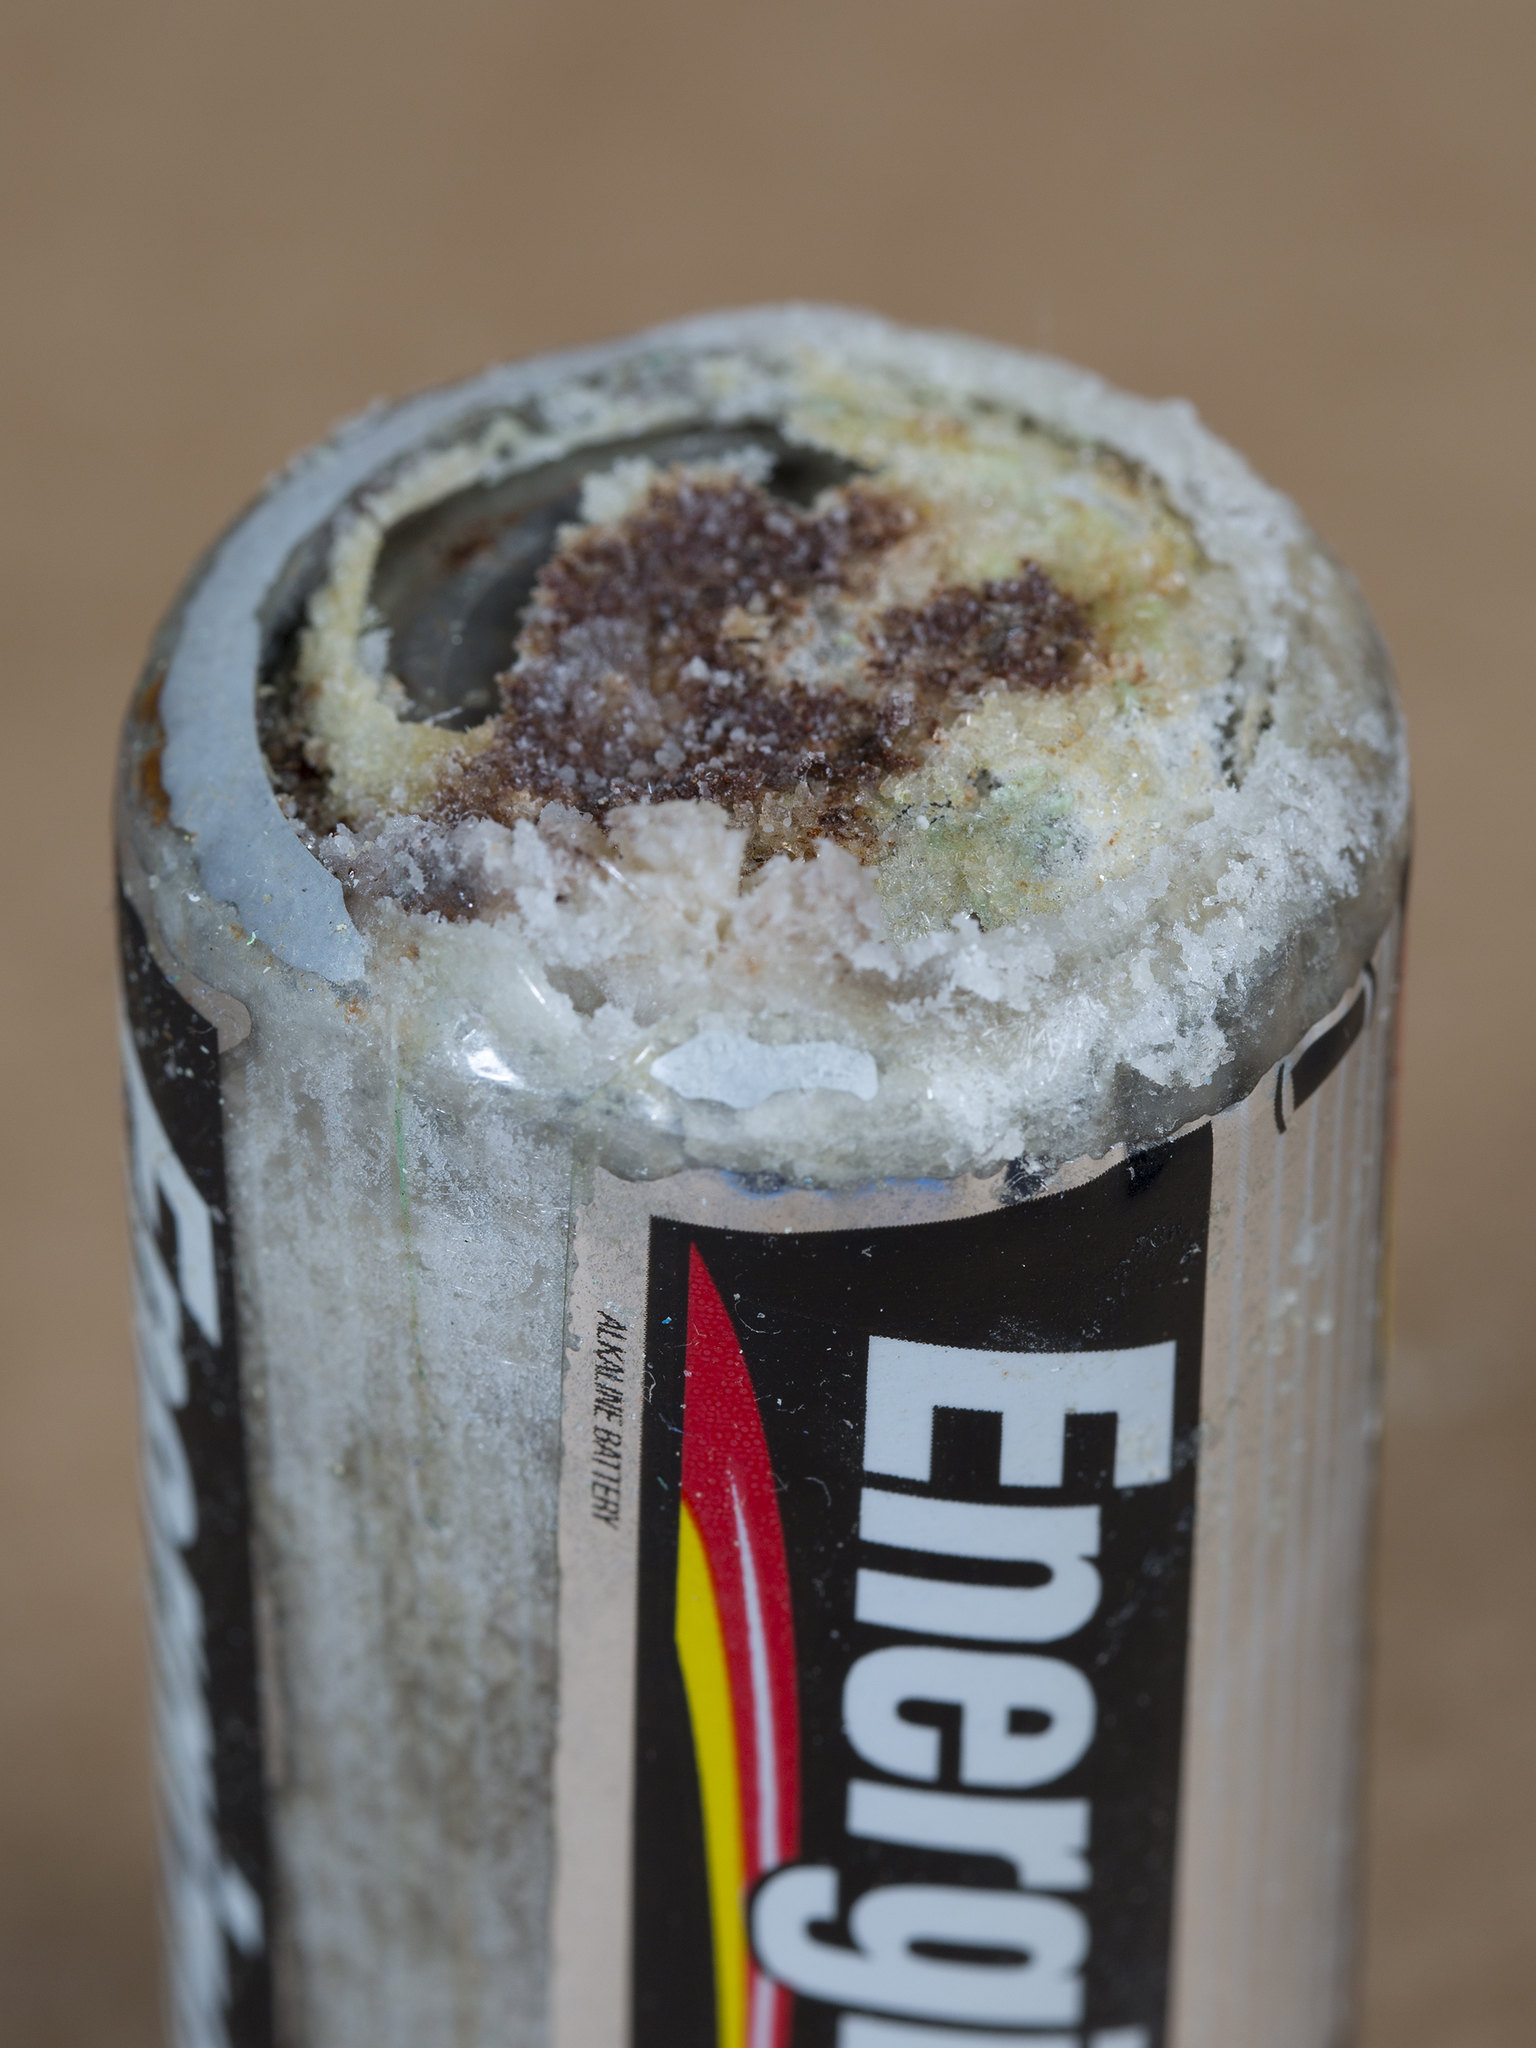 Image shows the end of a battery which has leaked its acidic contents. The leak looks like a thick crust of a whitish substance.